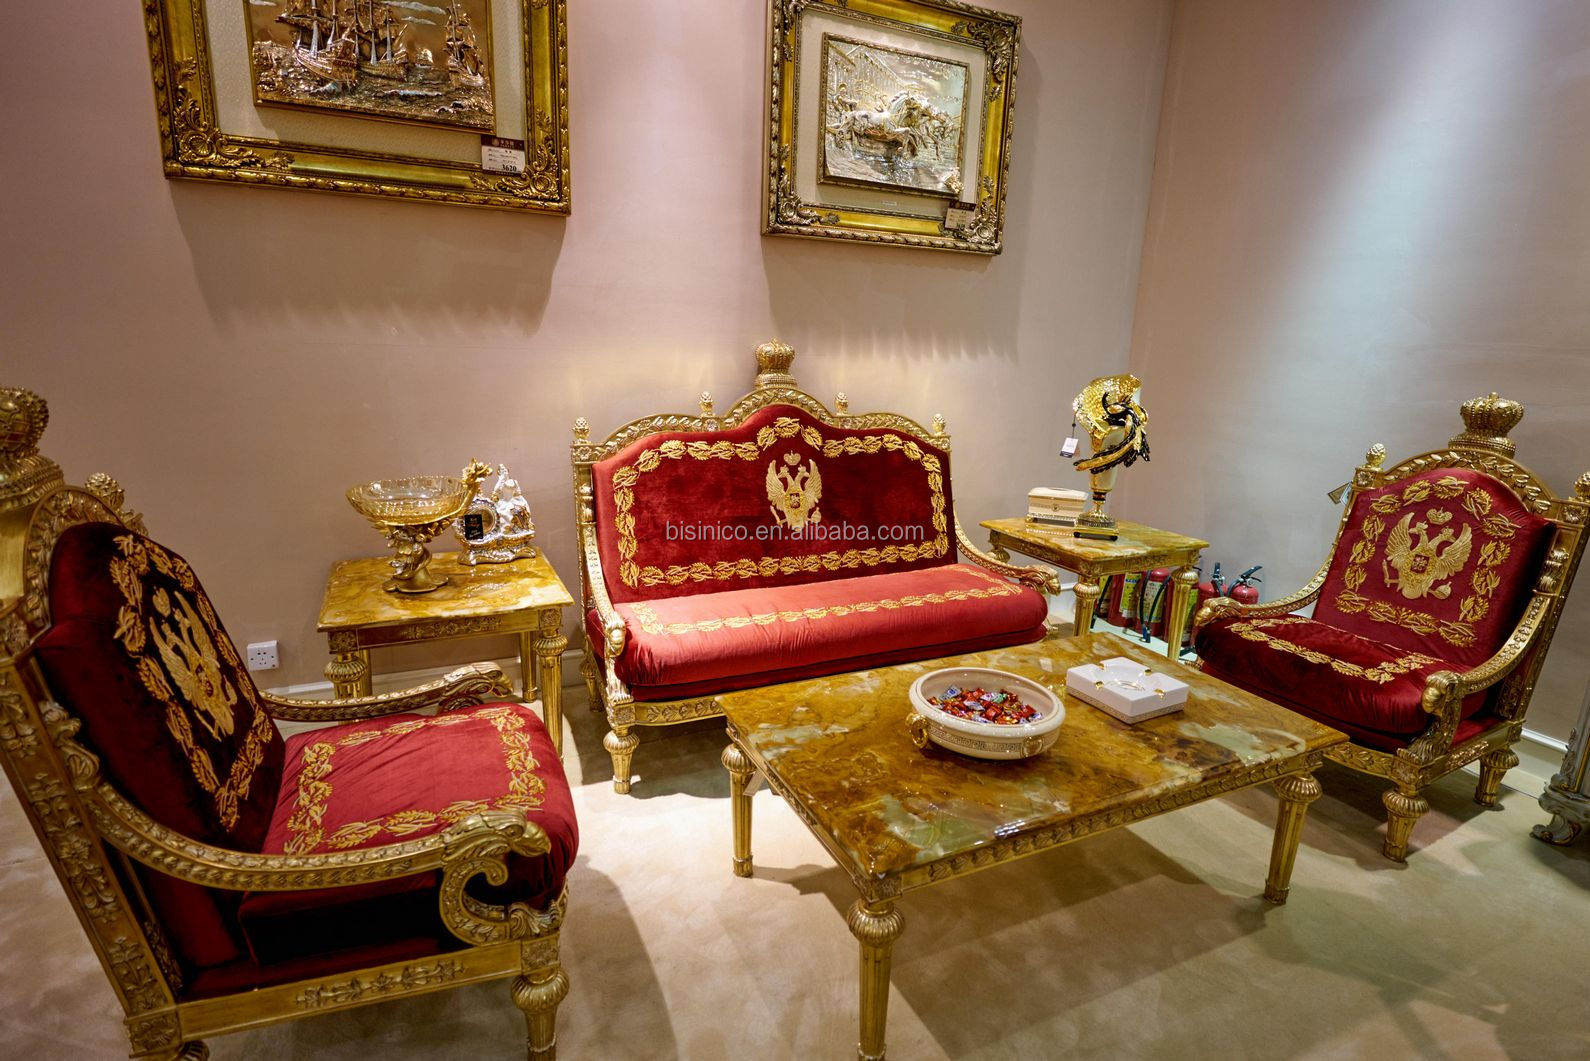 European Baroque Design Gold Leaf Wooden Carved Throne Chair / Antique Golden Royal King Sofa Table Set